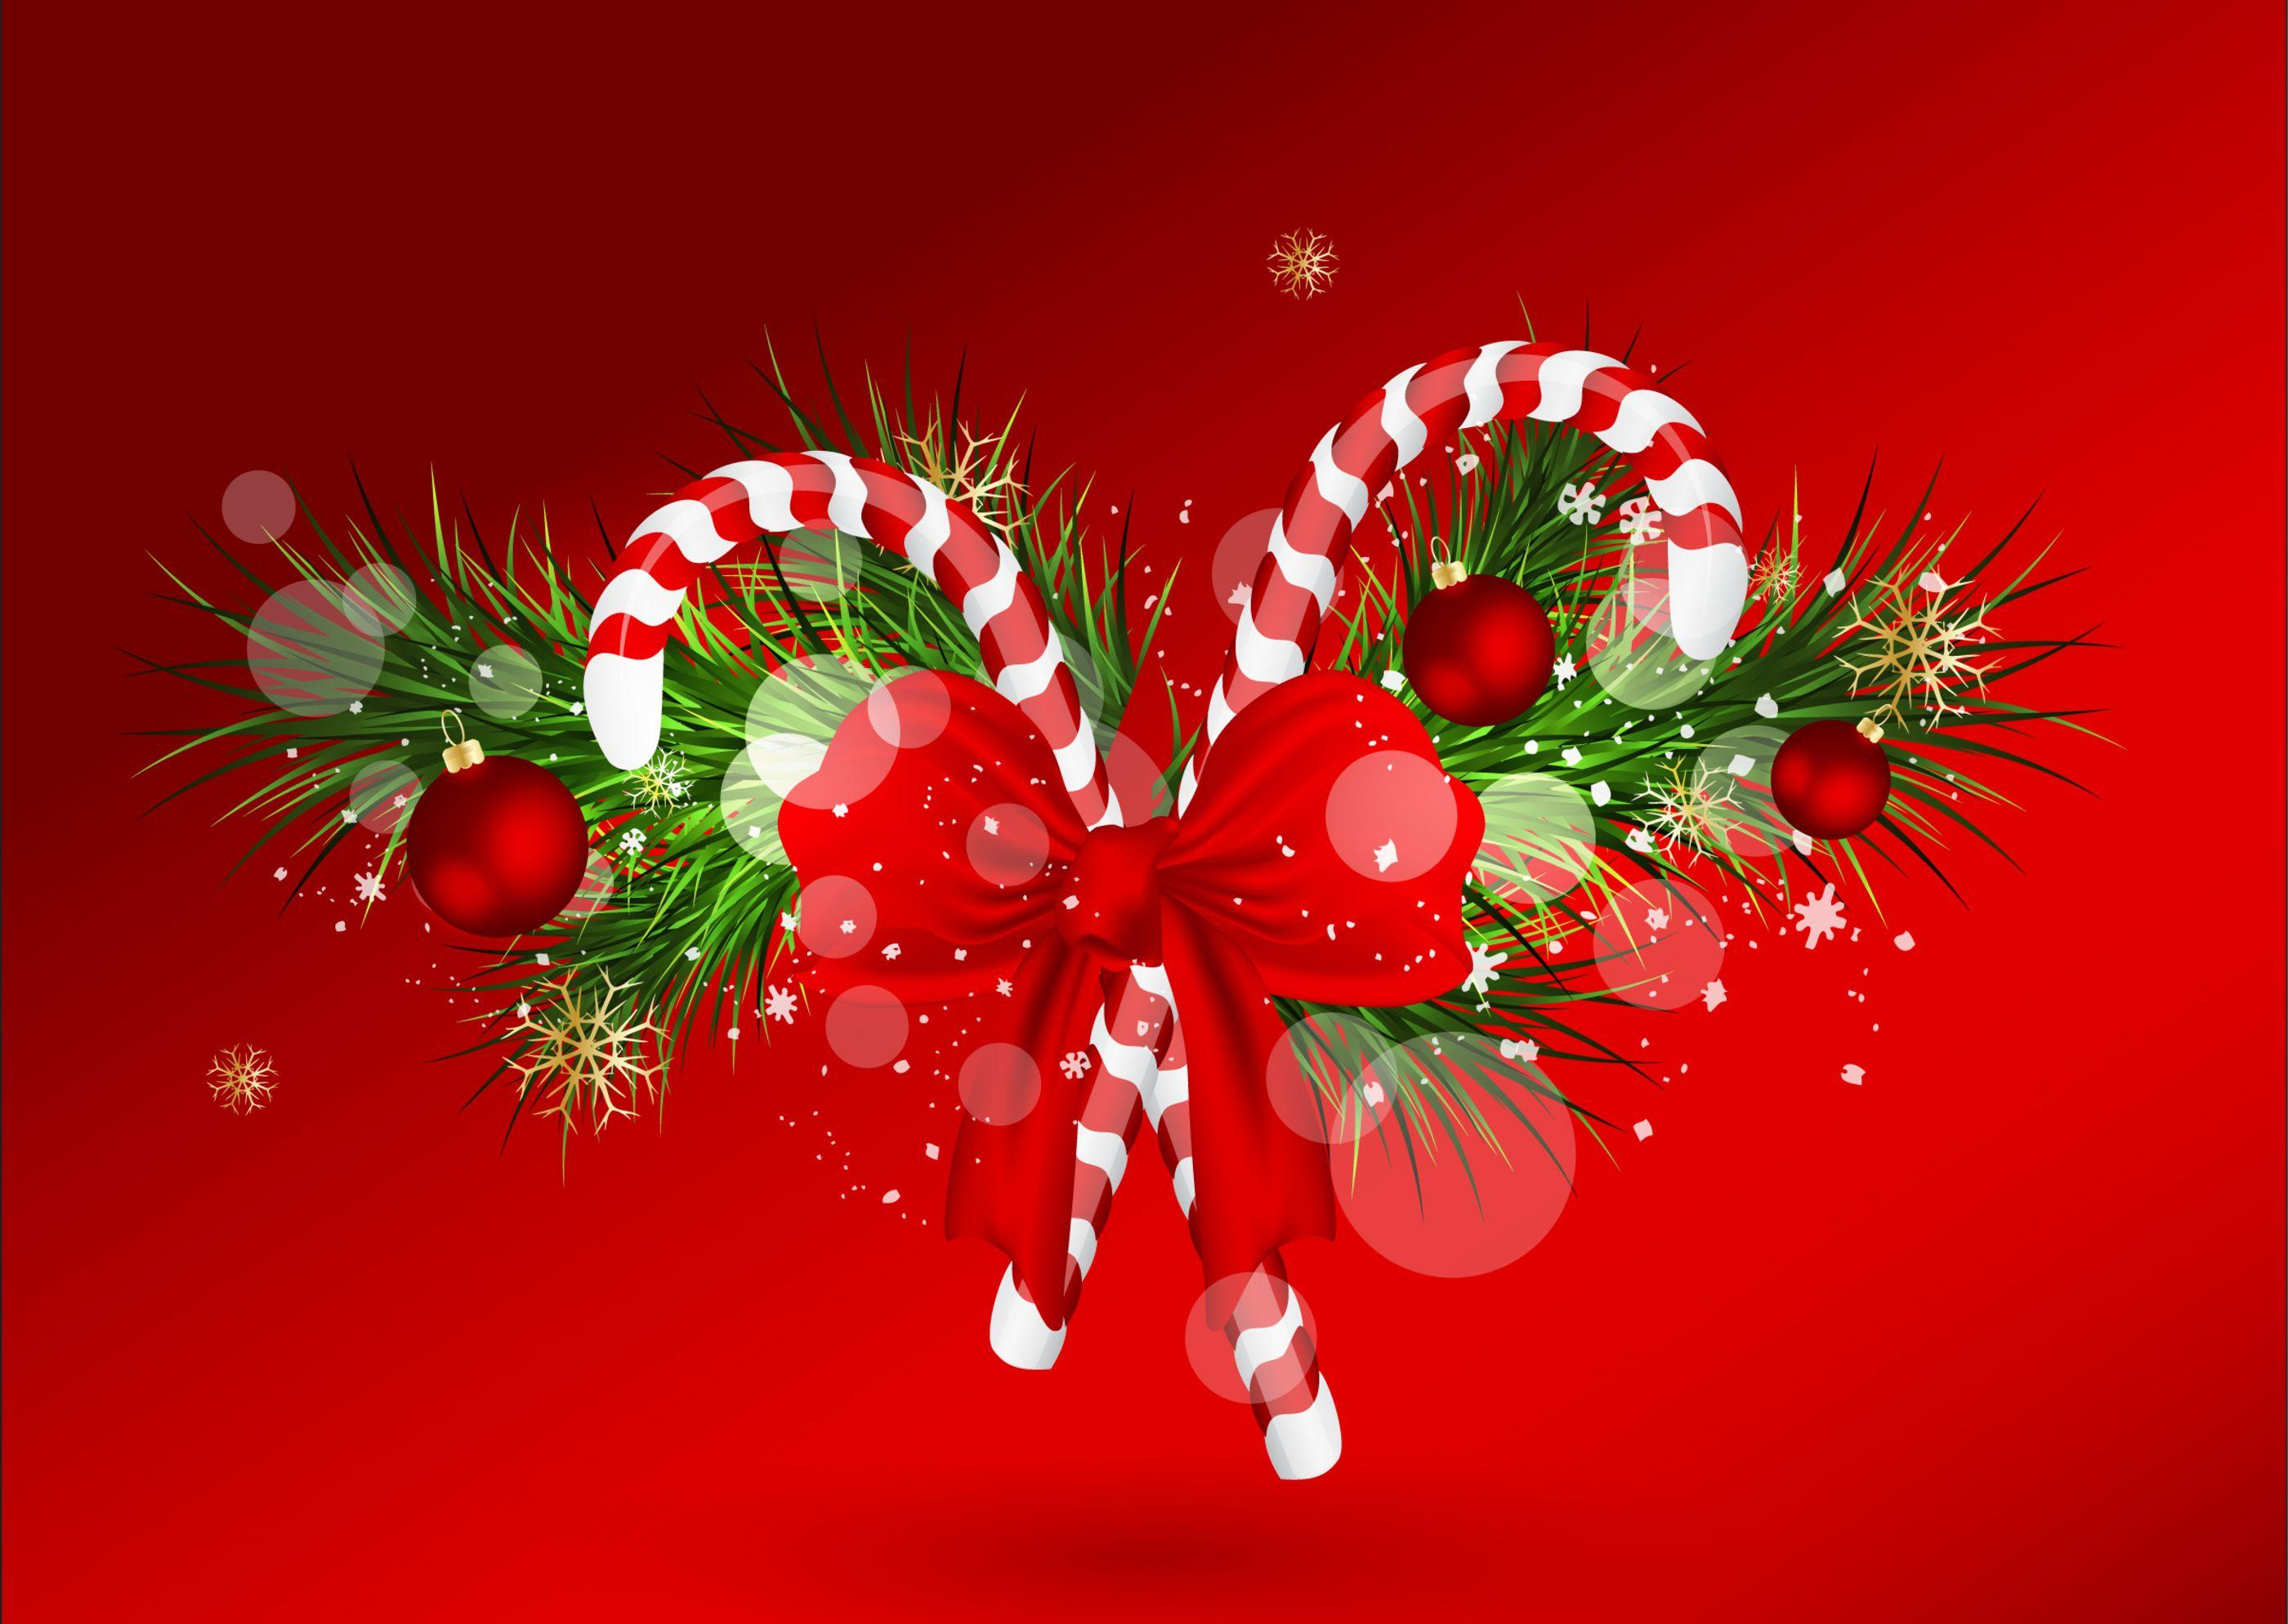 84 Candy Cane HD Wallpapers